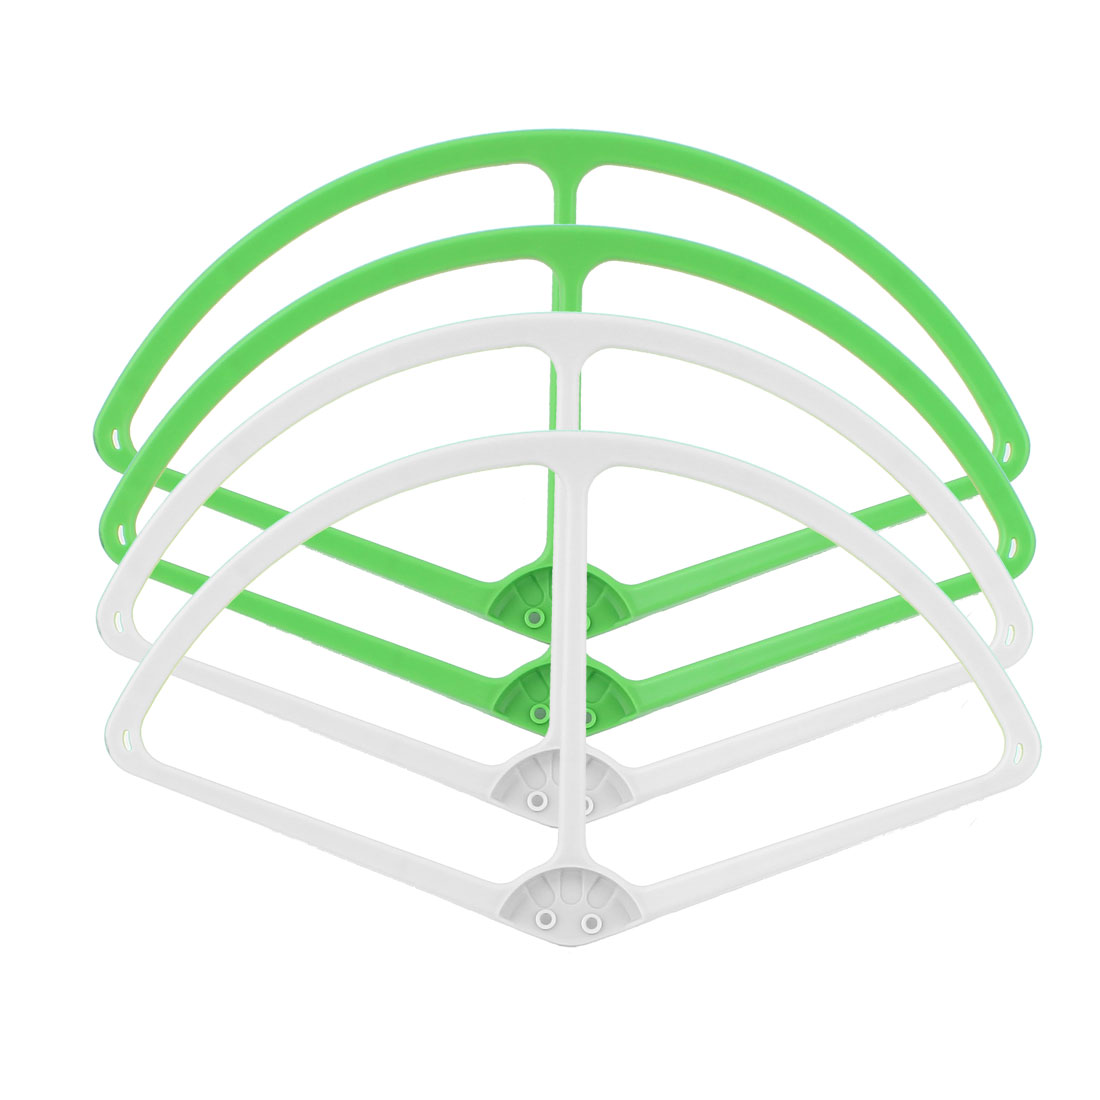 "9"" Propeller Vane Protective Guard Bumper Set Green White for DJI Phantom 2 Vision"